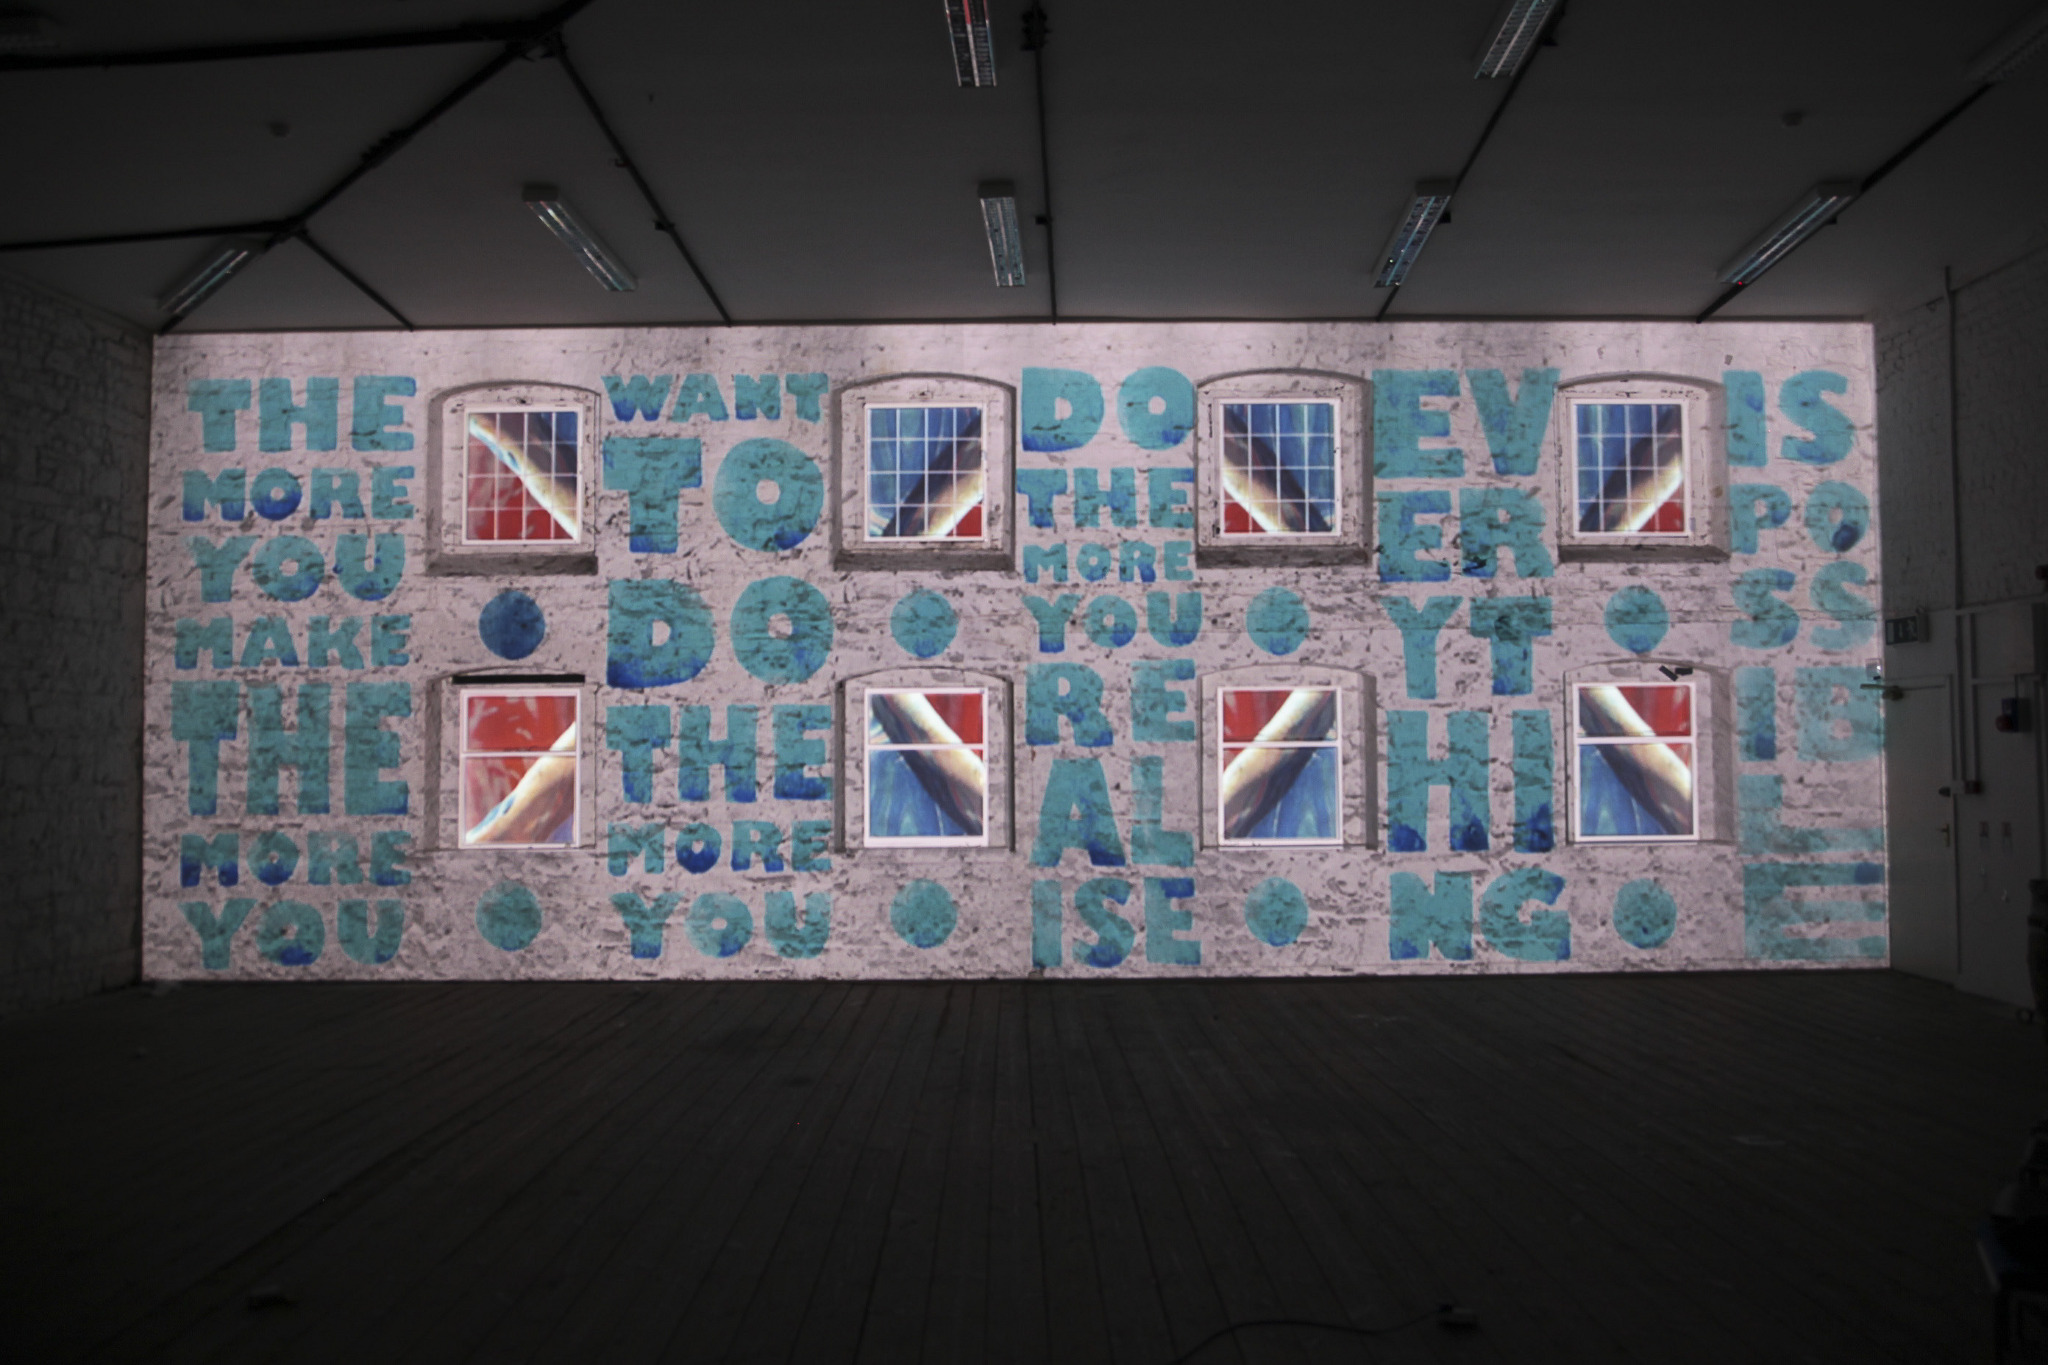 2D and 3D motion graphics and projection mapping to create an original piece of work